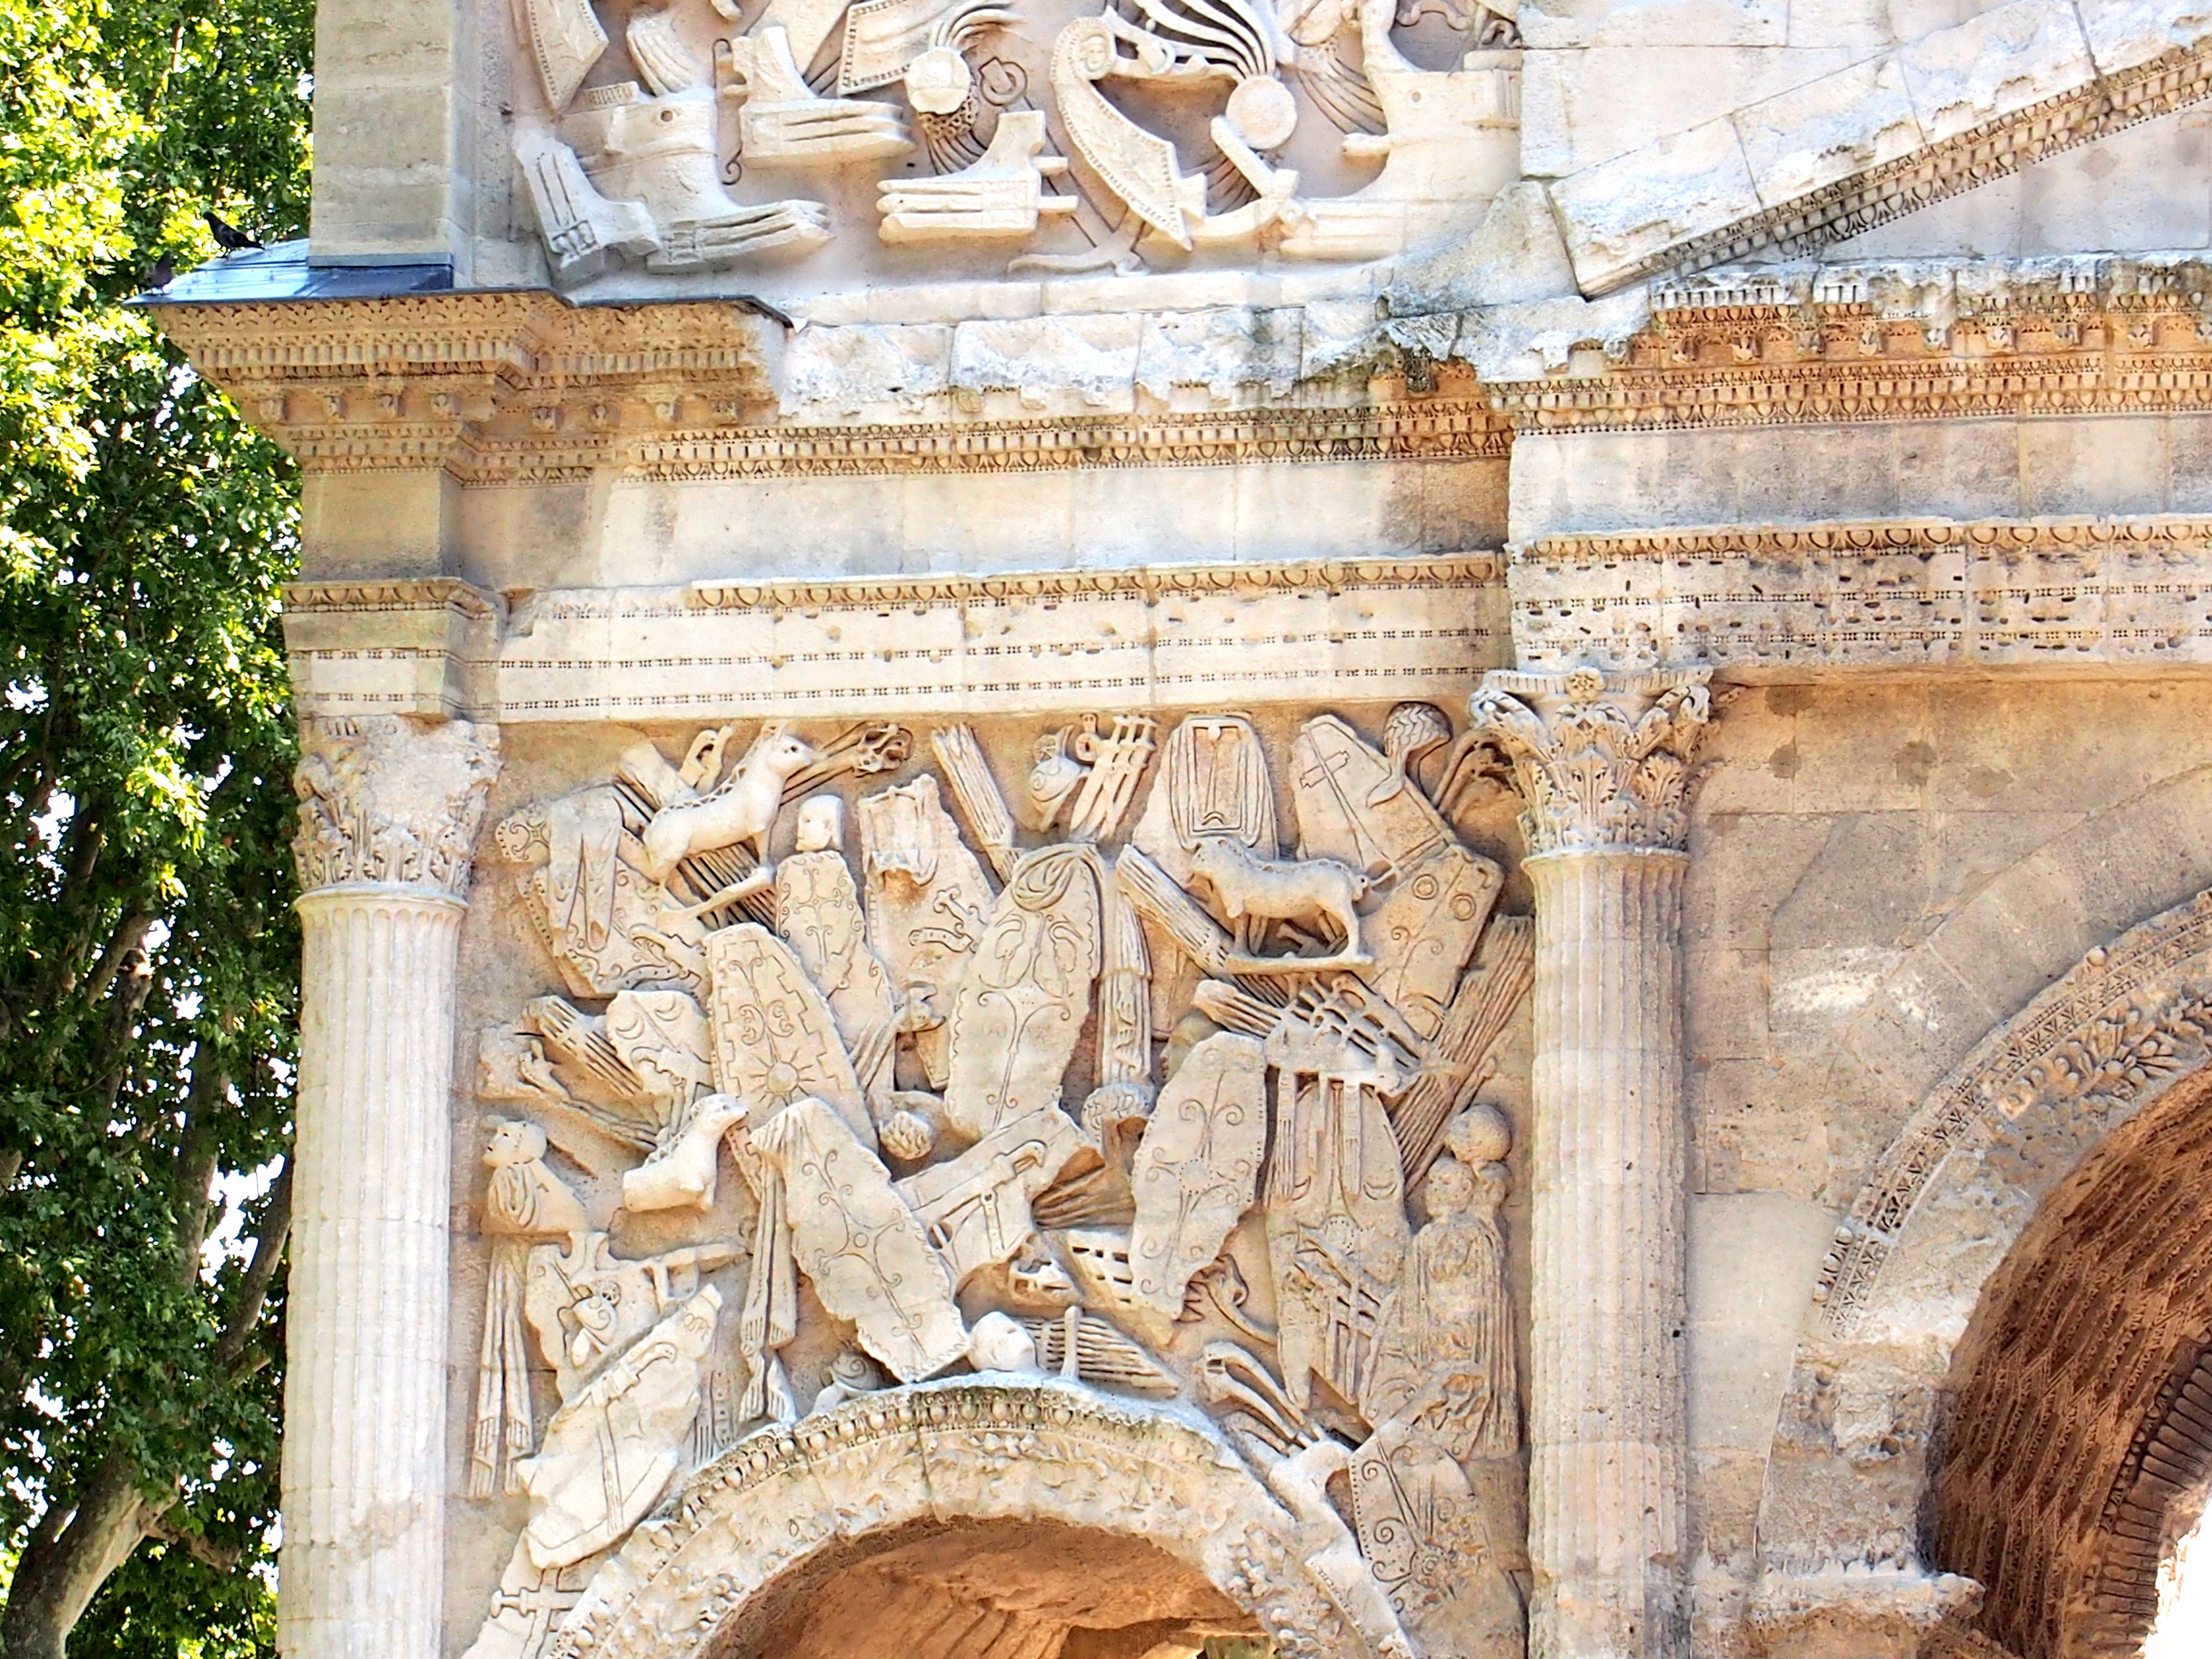 File:Arch in Orange, France Aug 2013 - Detail.jpg ...  File:Arch in Or...